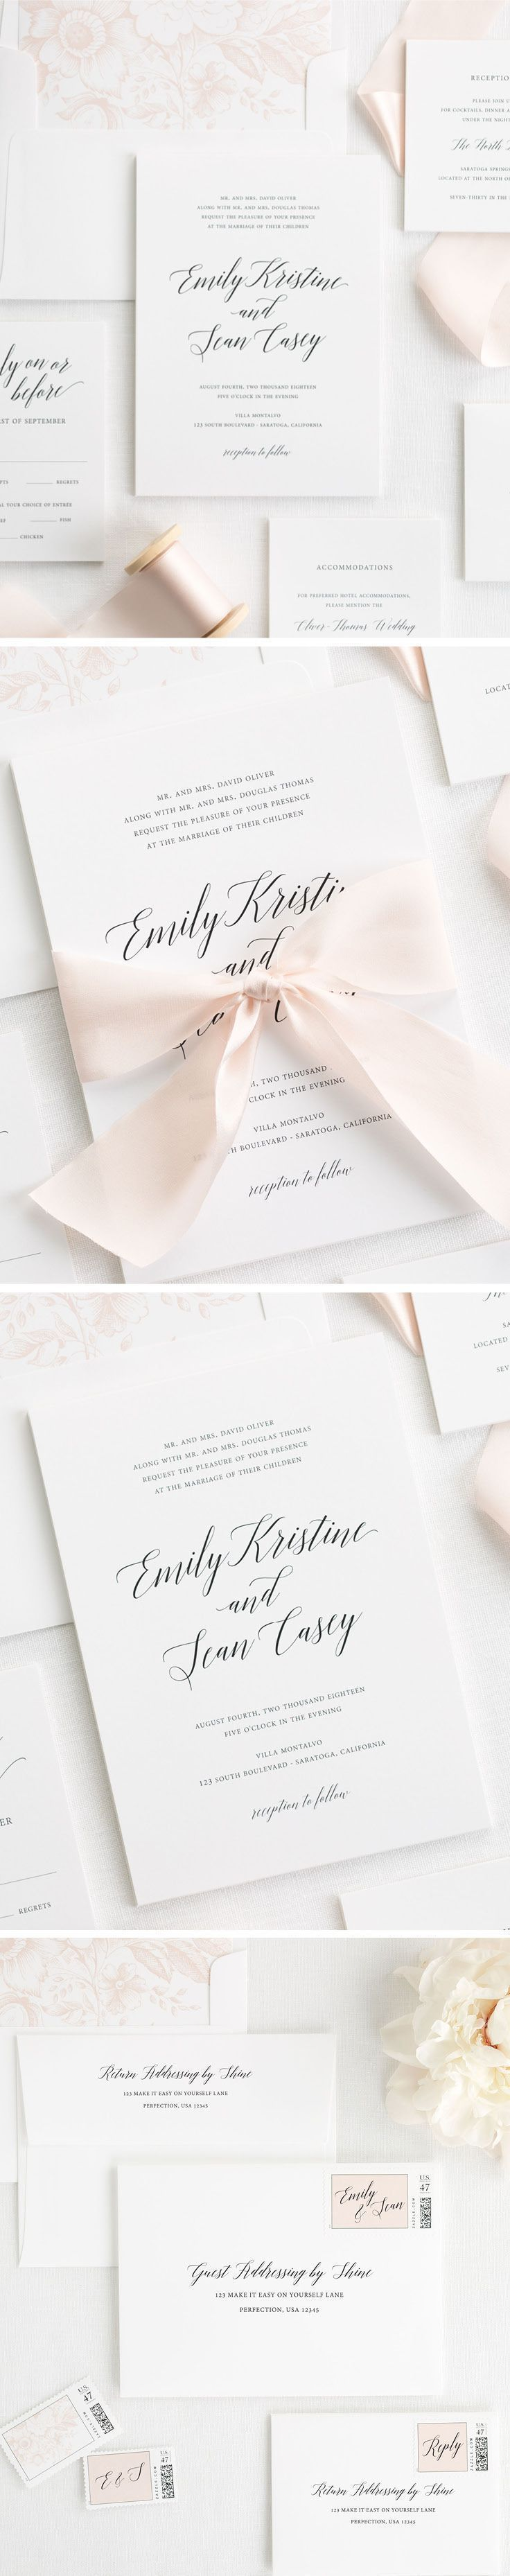 Let your wedding day shine with our romantic design, Garden Romance. This simple and classic wedding invitation mixes a romantic calligraphy font and simple block font to make subtle statement.